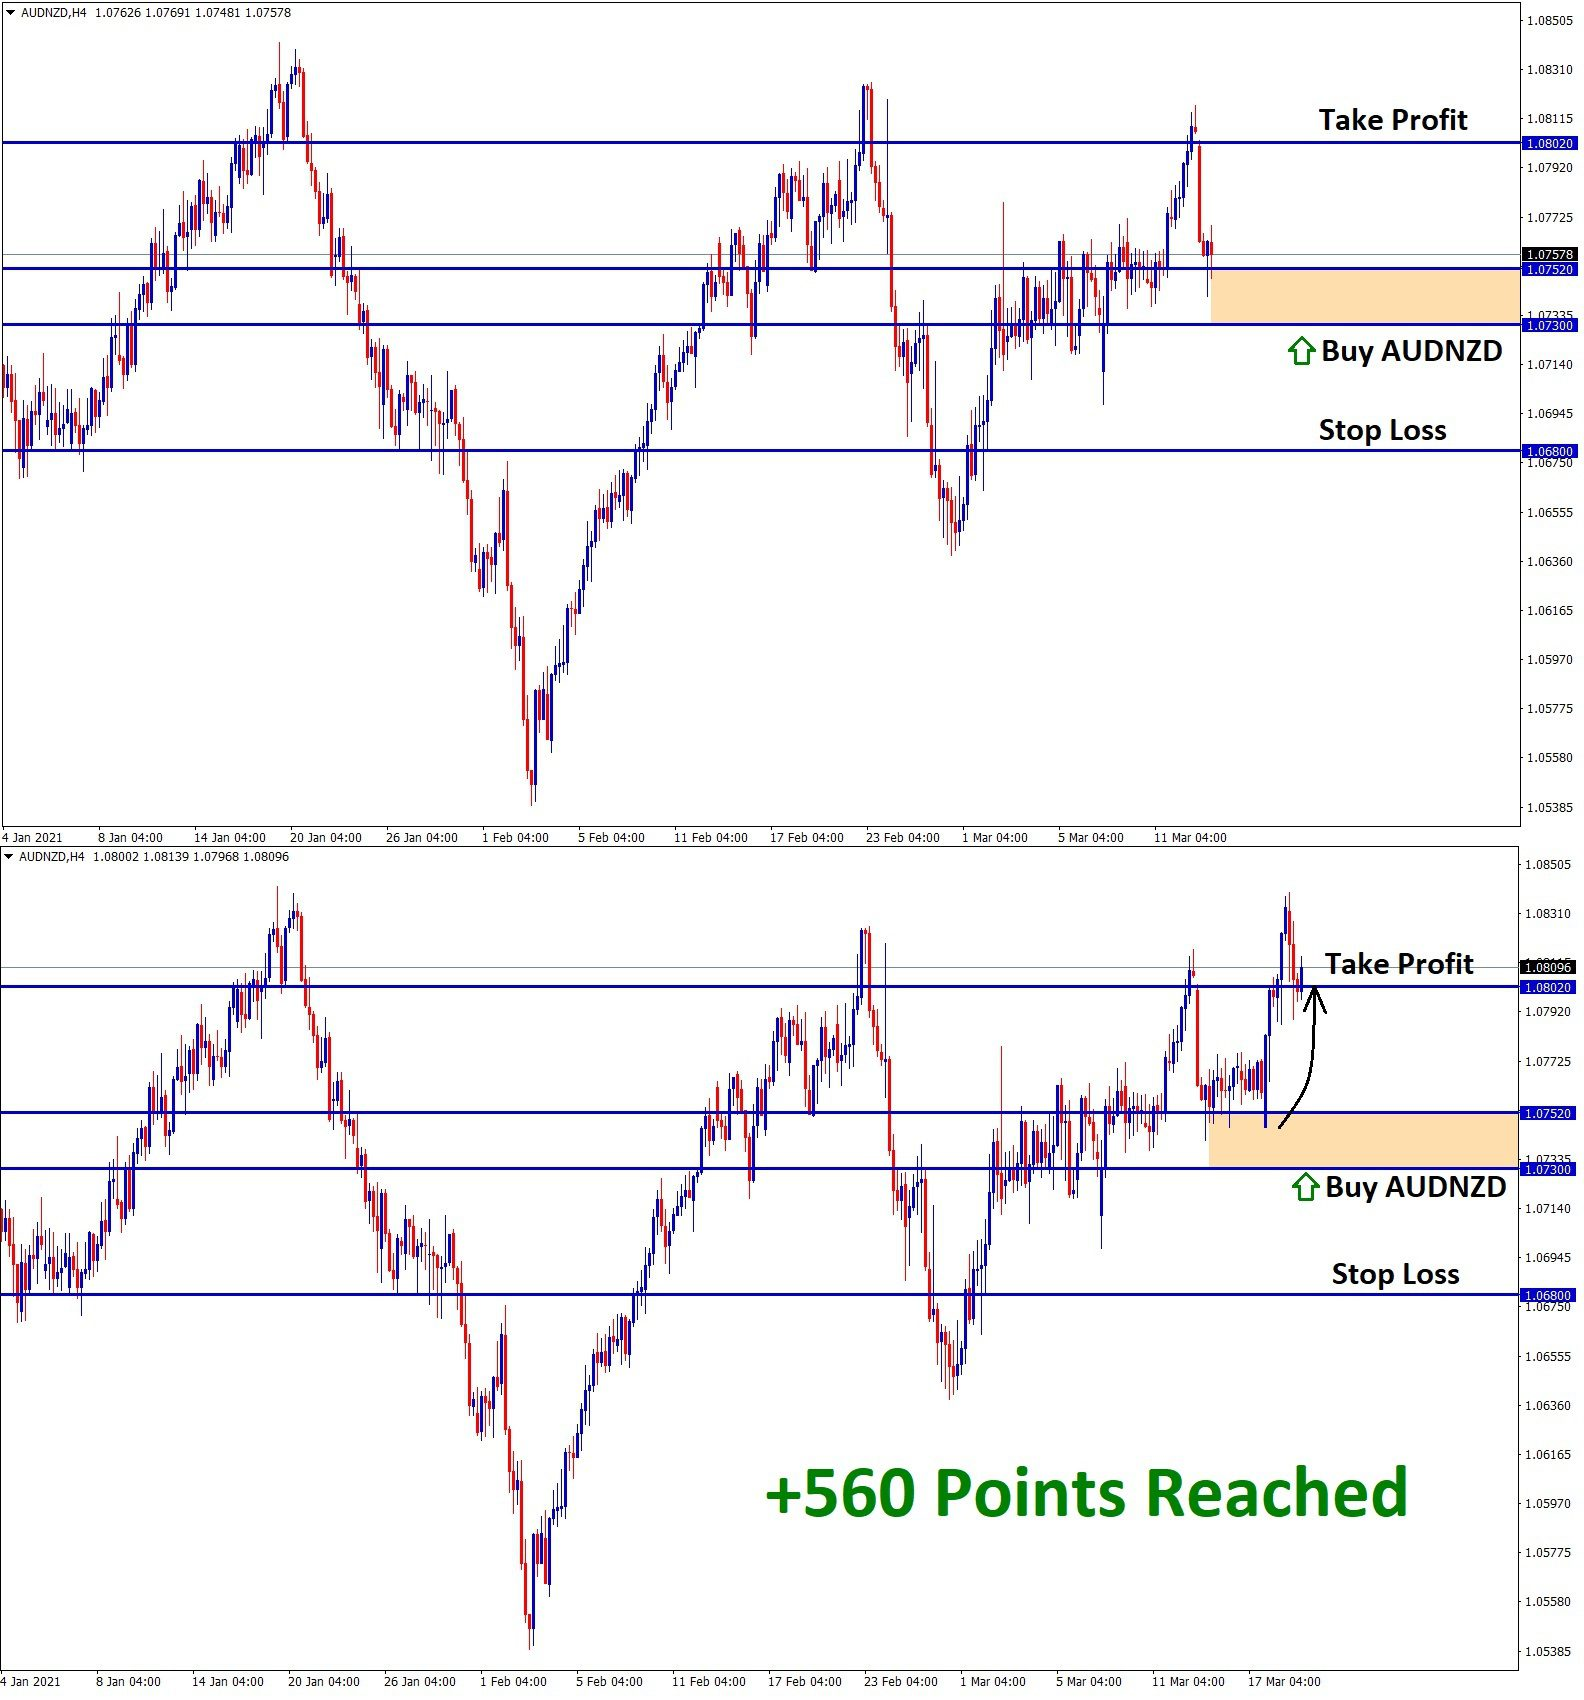 AUDNZD 560 Points Reached